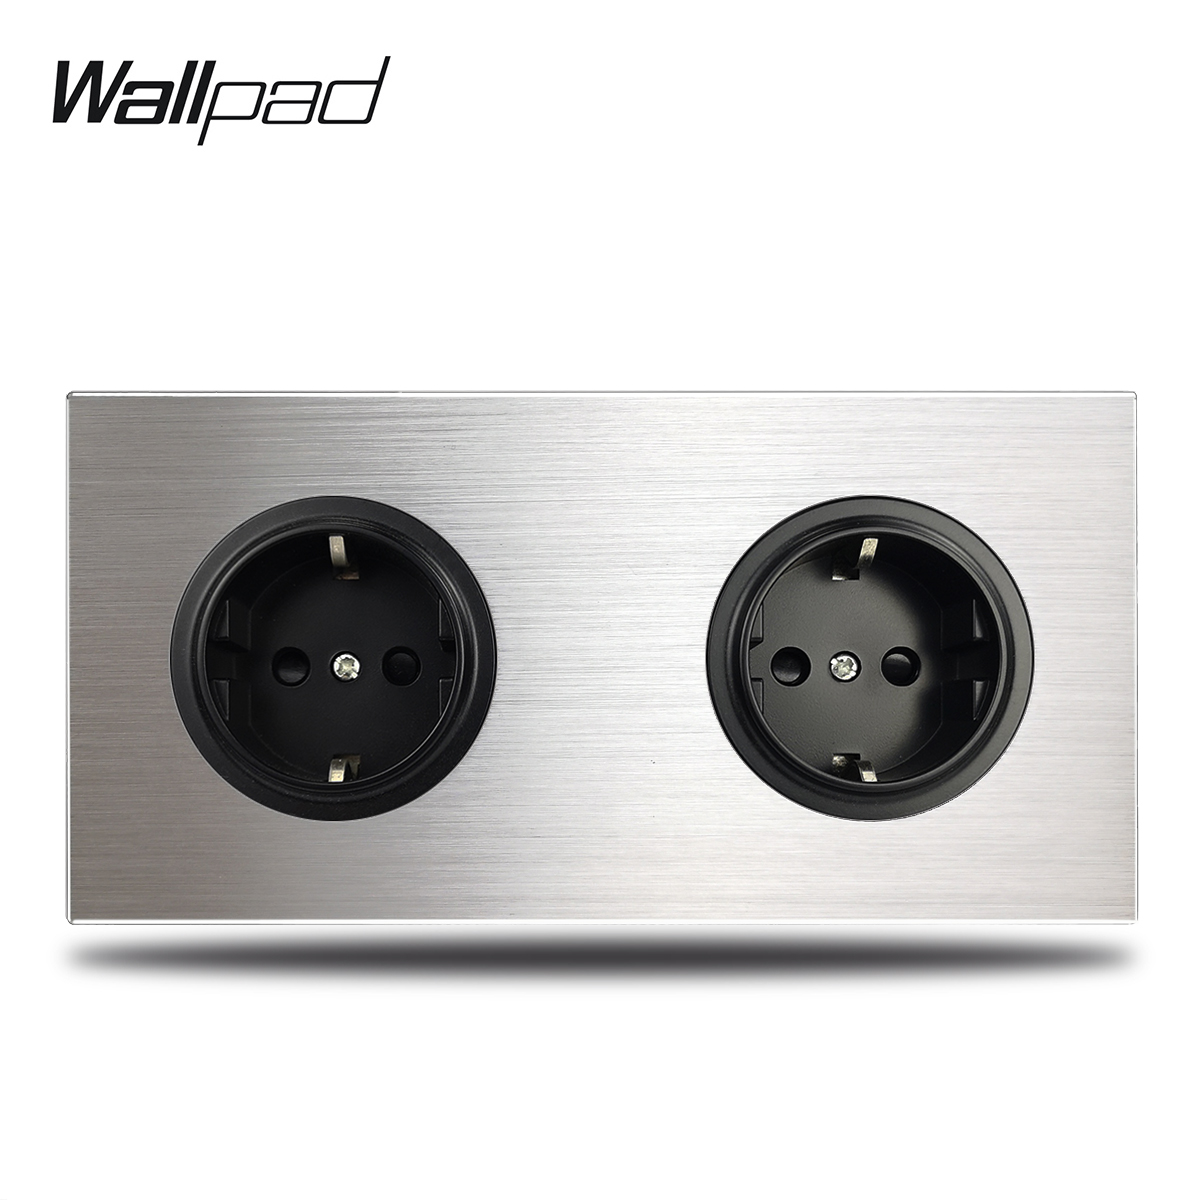 wallpad-grey-2-gang-double-eu-wall-electric-outlet-socket-german-plug-silver-brushed-aluminum-panel-double-plate-172-86-mm